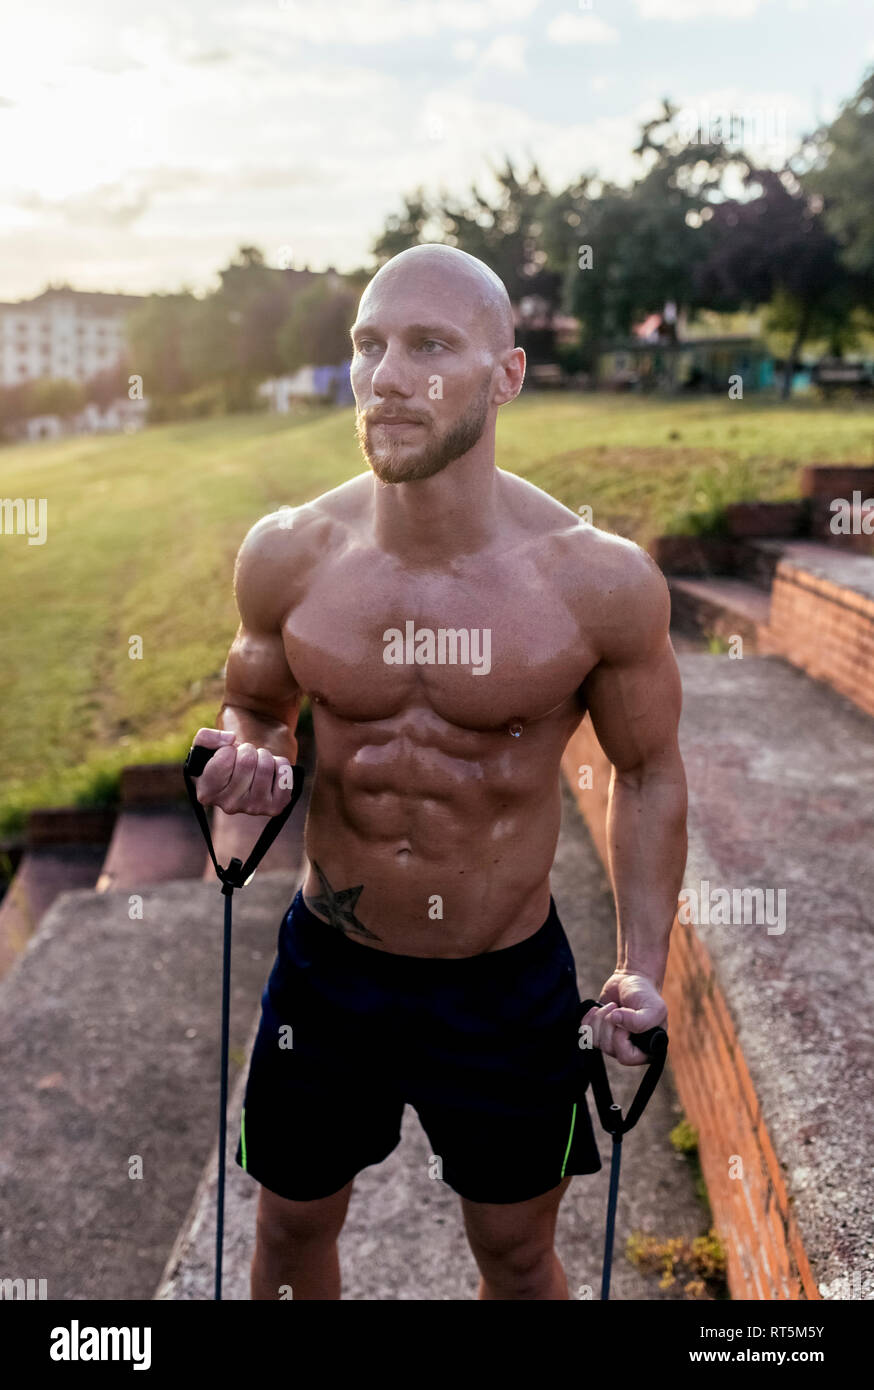 Barechested muscular man exercising with expander outdoors - Stock Image